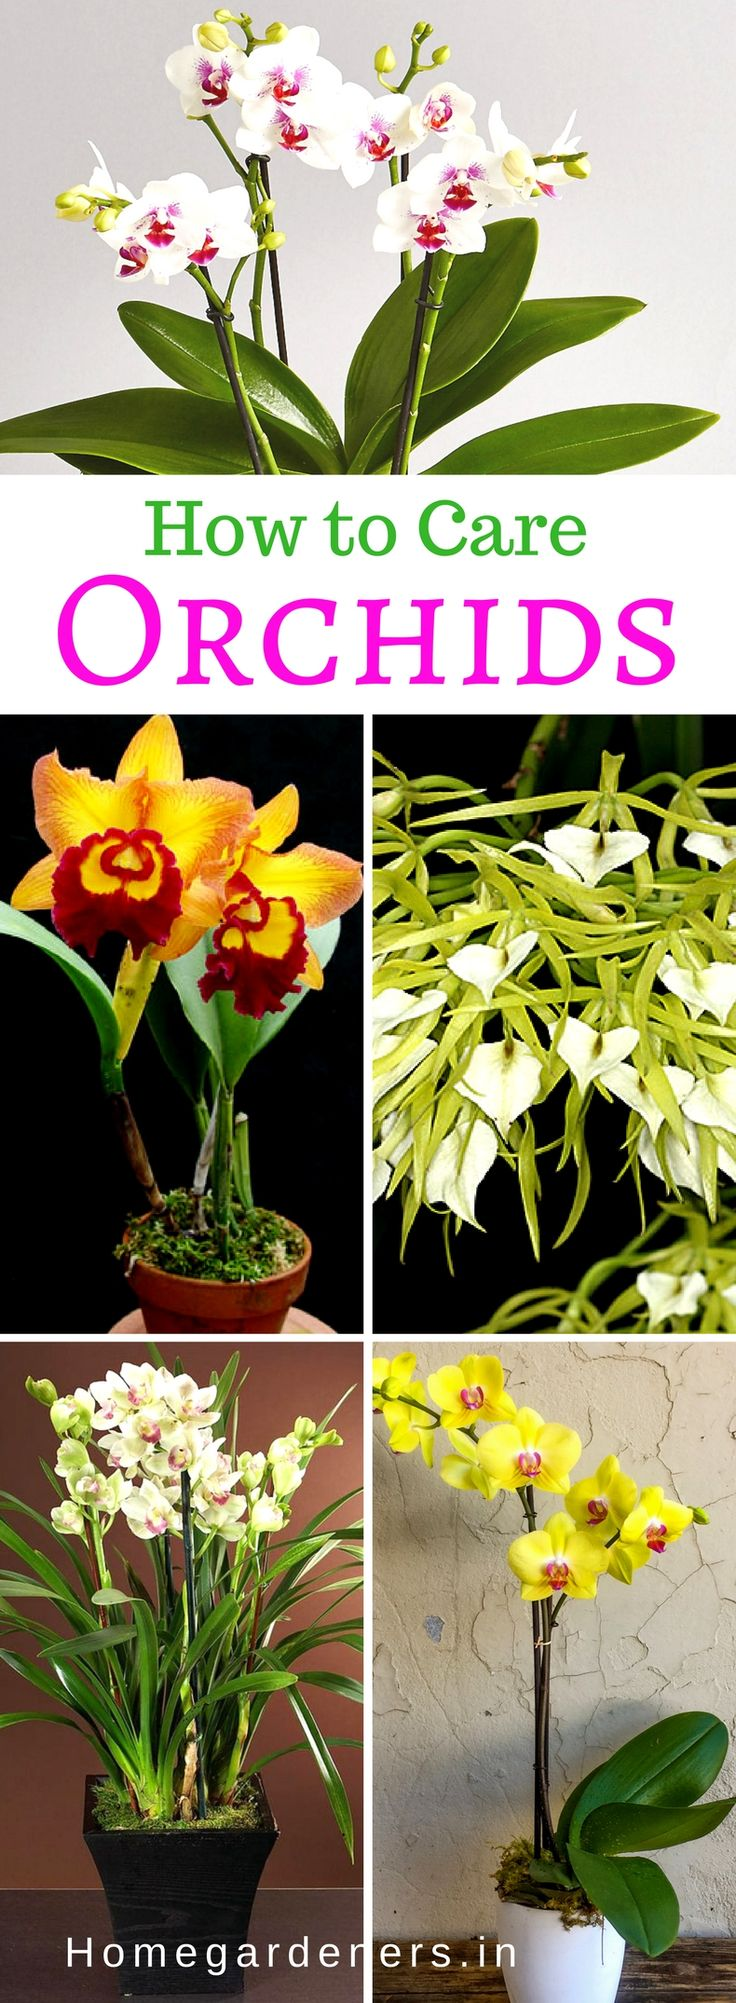 How to grow Orchids at Home  #gardening #gardeningtips #gardeningideas #flowers